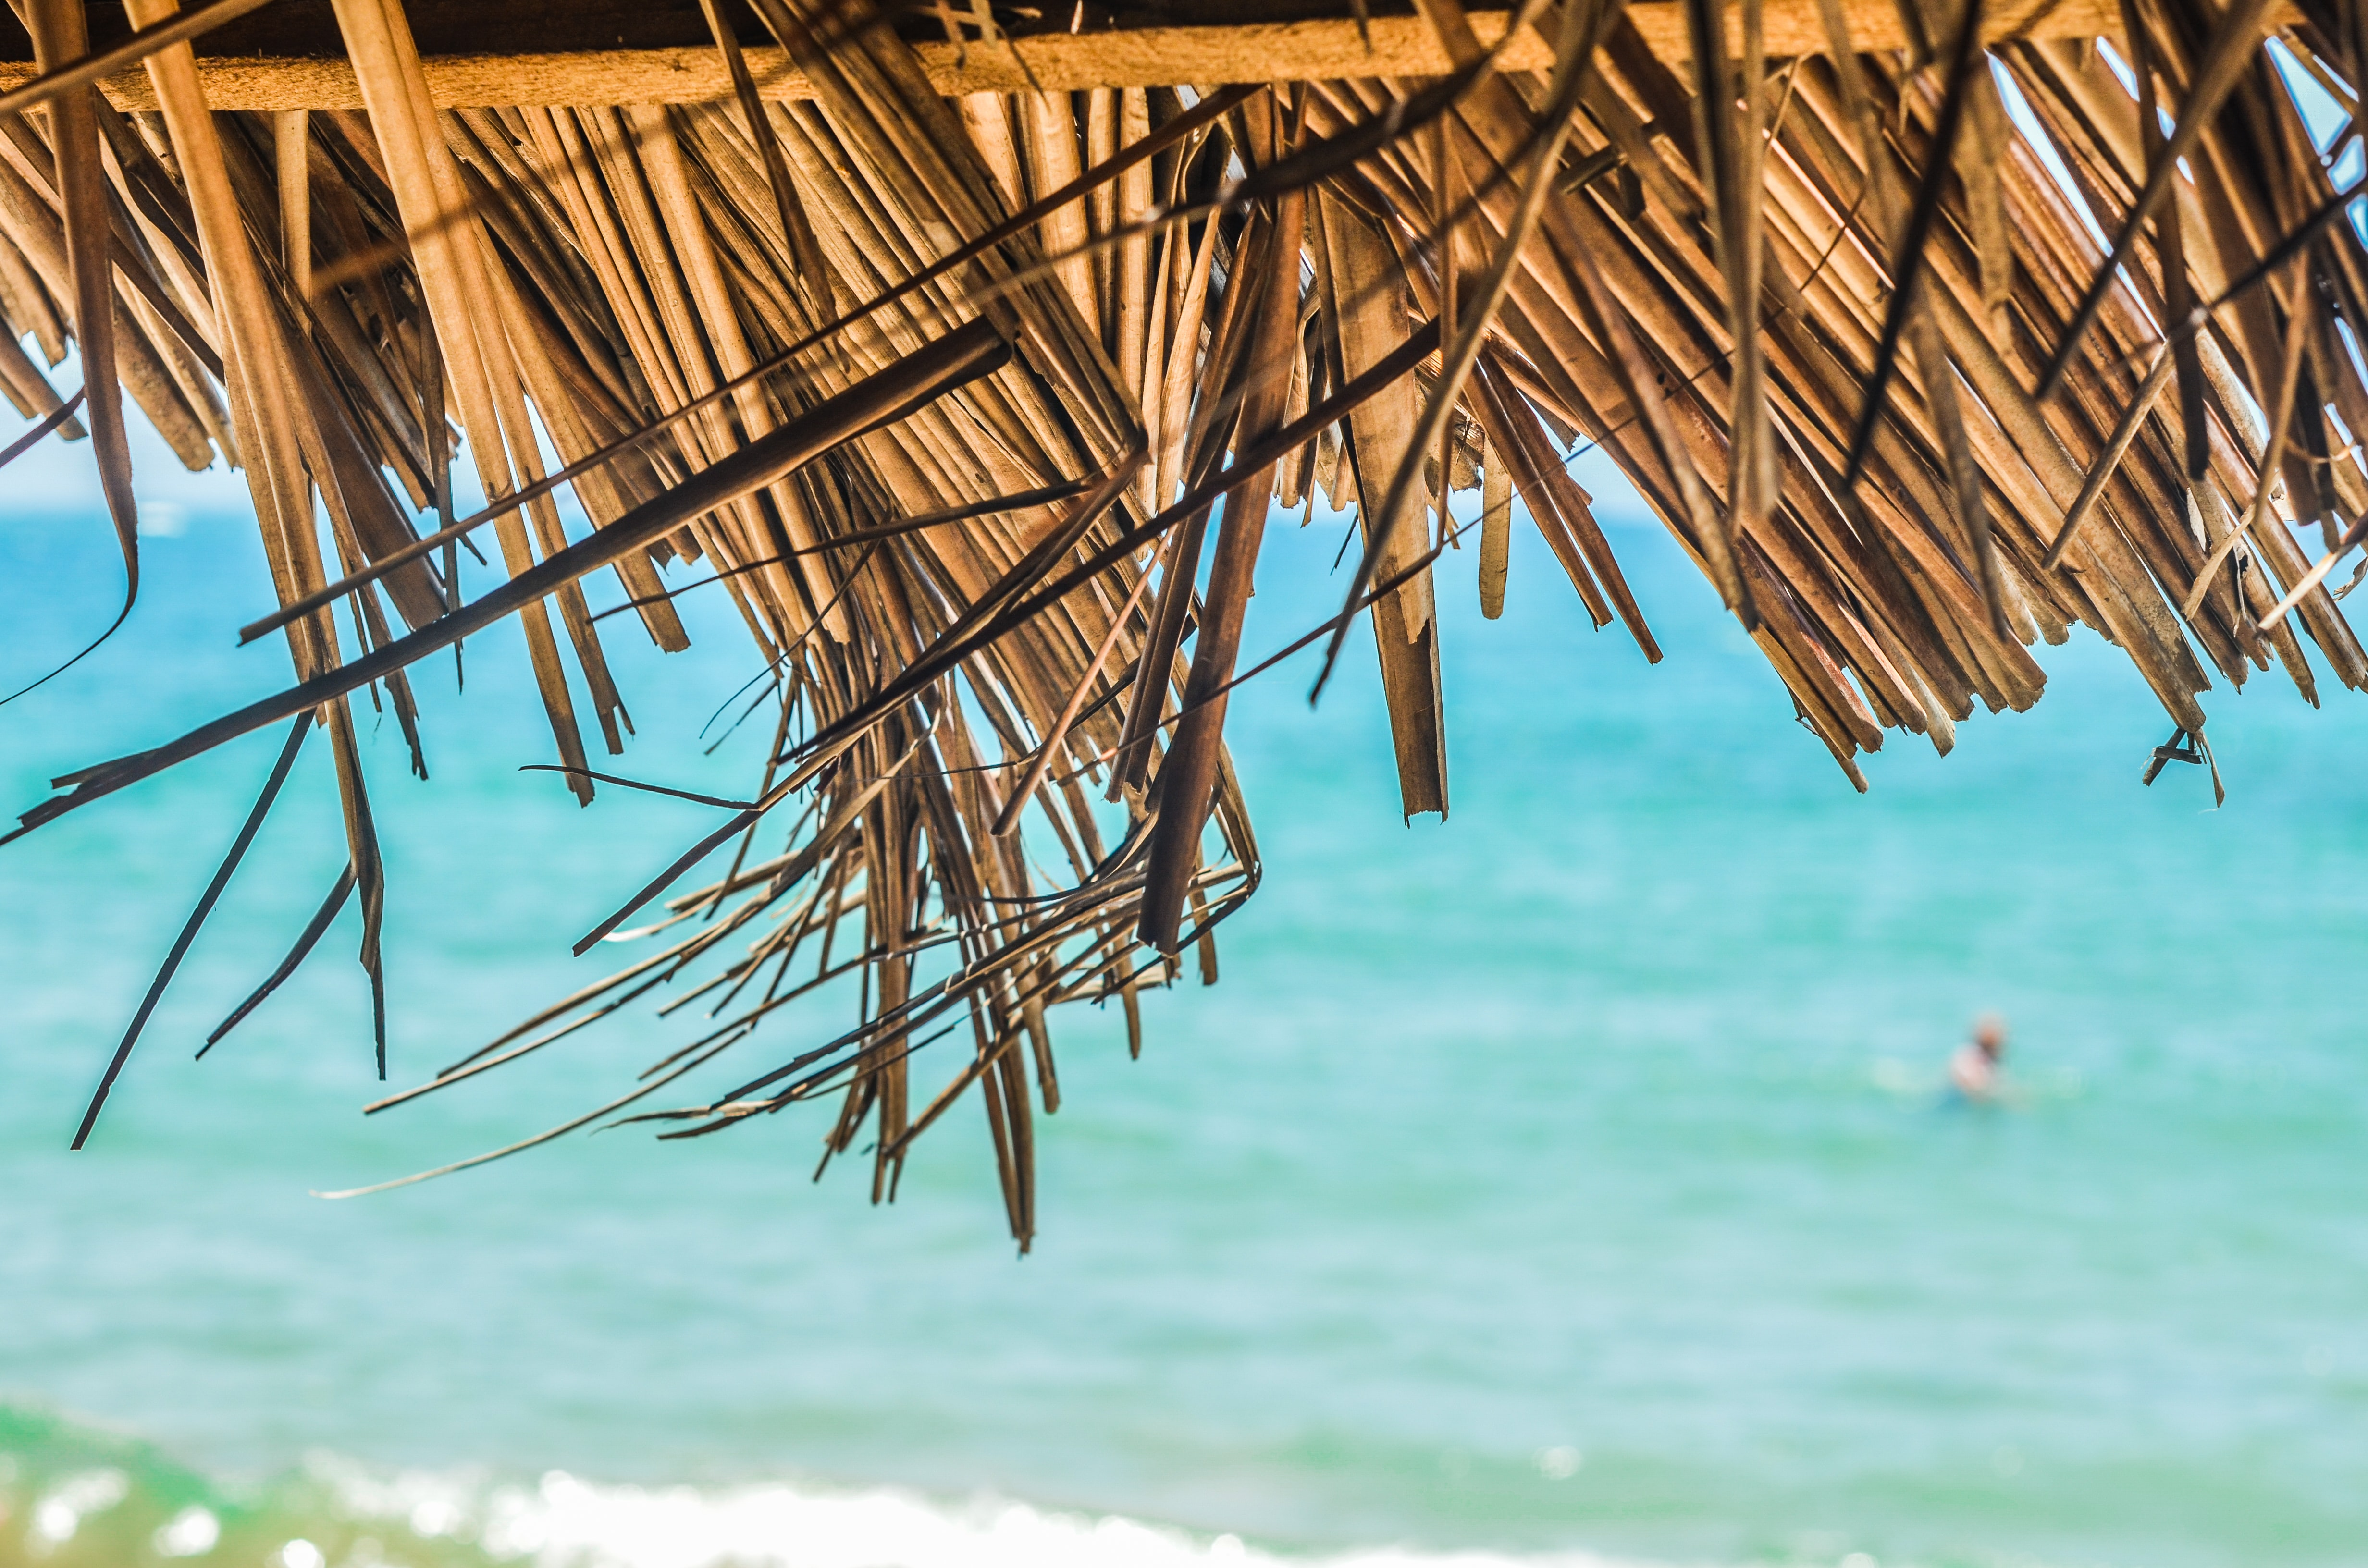 A close-up of a thatched roof by the sea with a person swimming in the blurry background